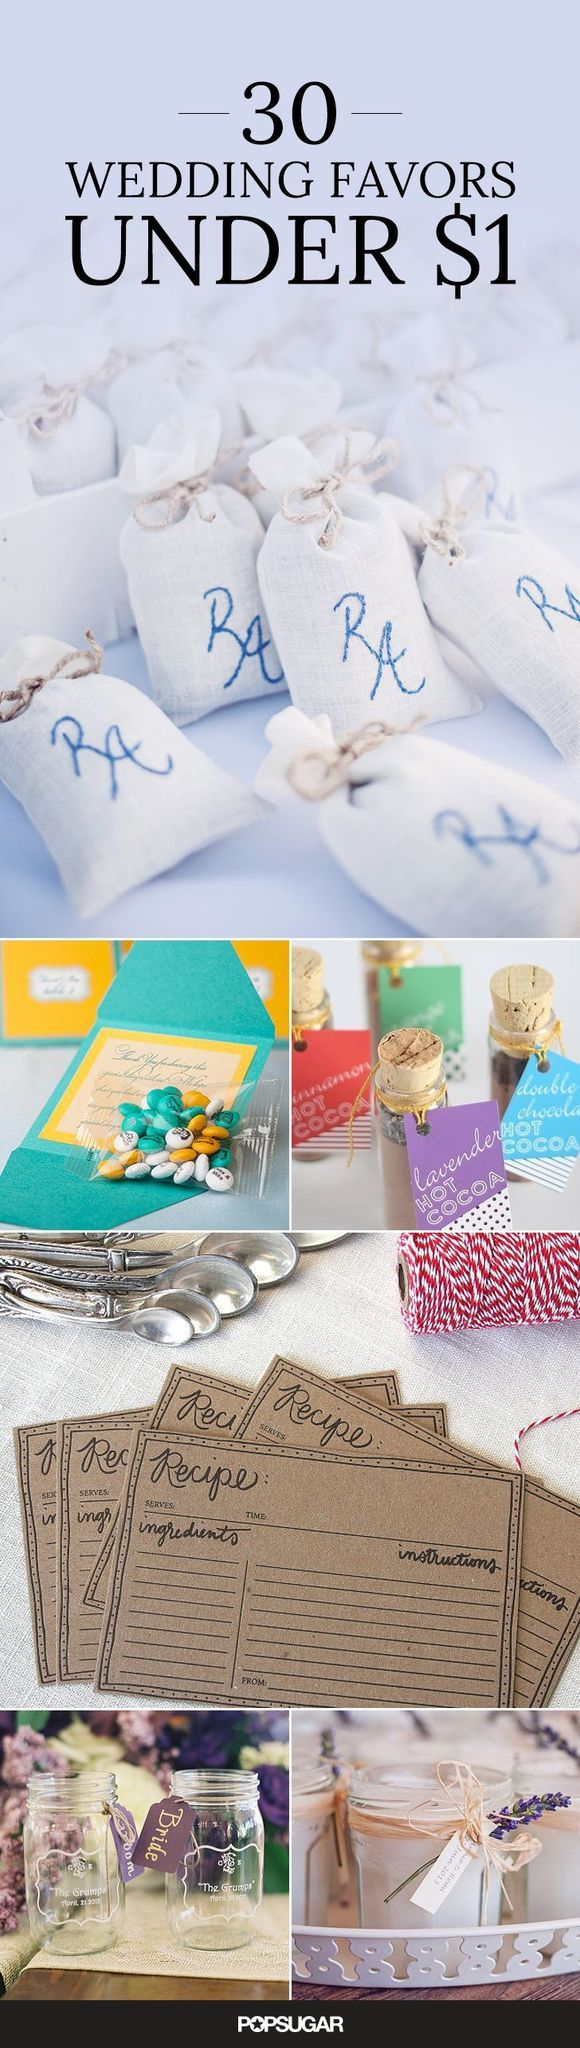 Hello inexpensive wedding favors! #Wedding #Bride #Groom